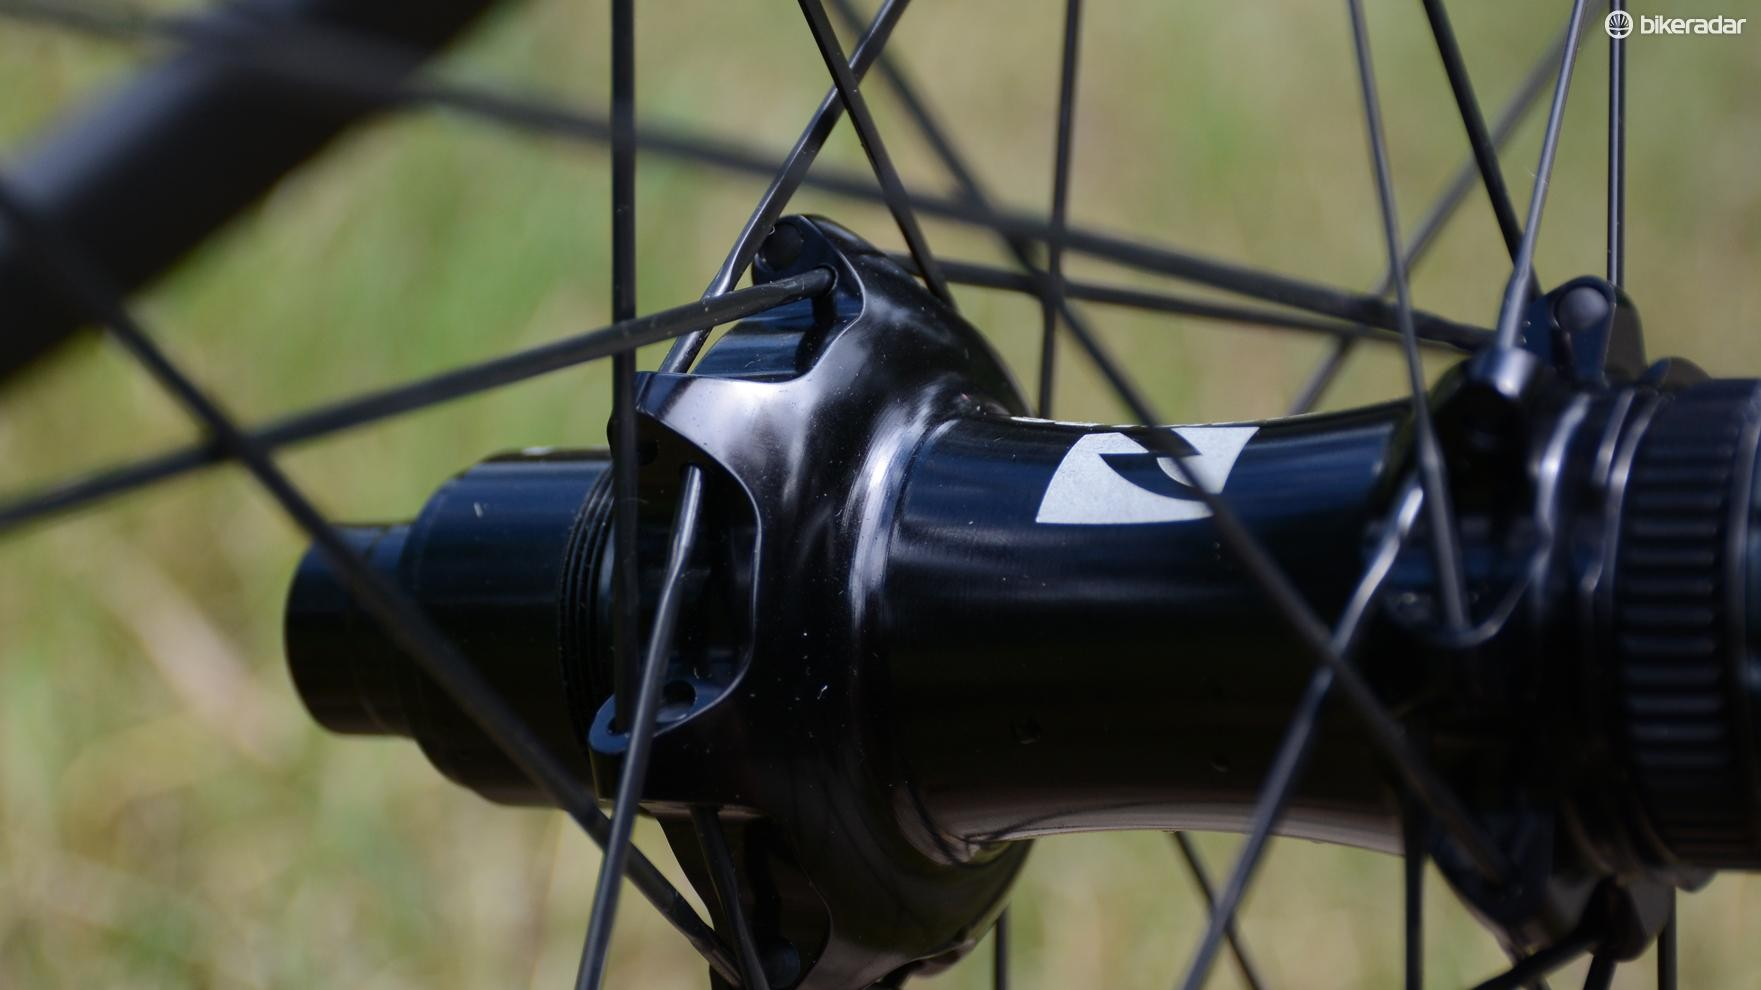 Straight-pull steel spokes are used, just not the blingy I9 aluminum ones